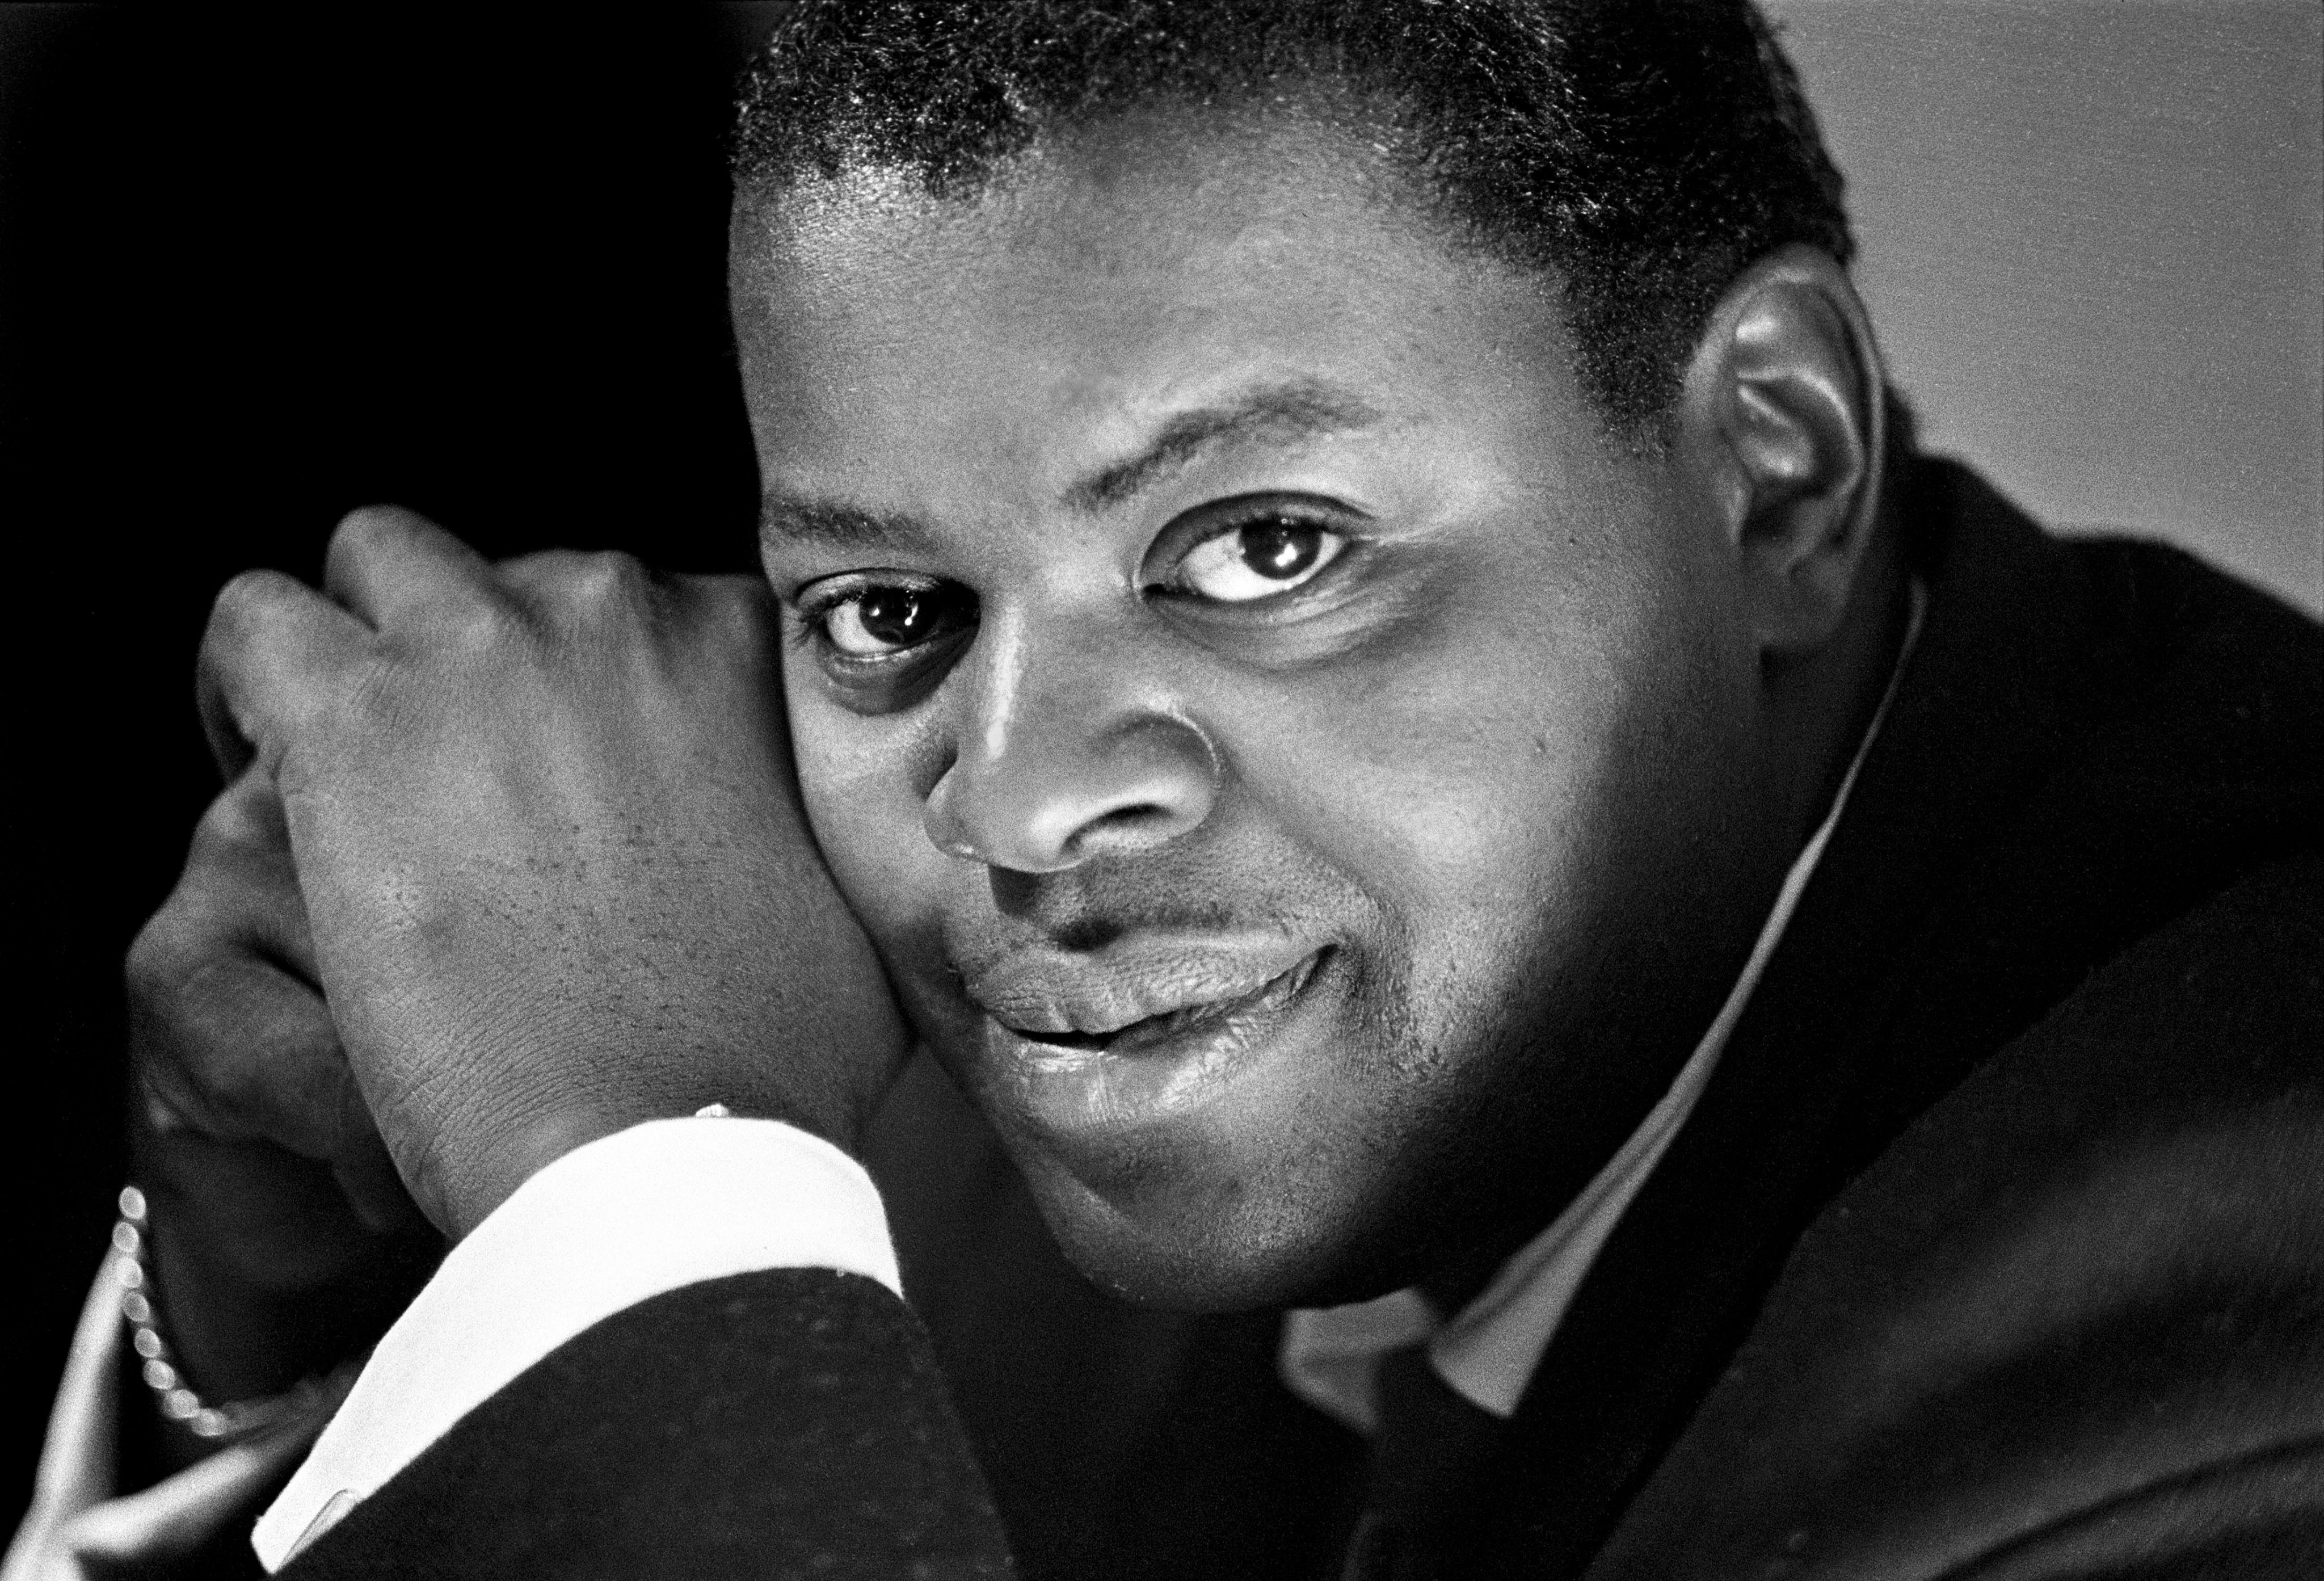 A black-and-white shot of pianist Oscar Peterson resting his face on clasped hands while looking beguilingly at the camera.